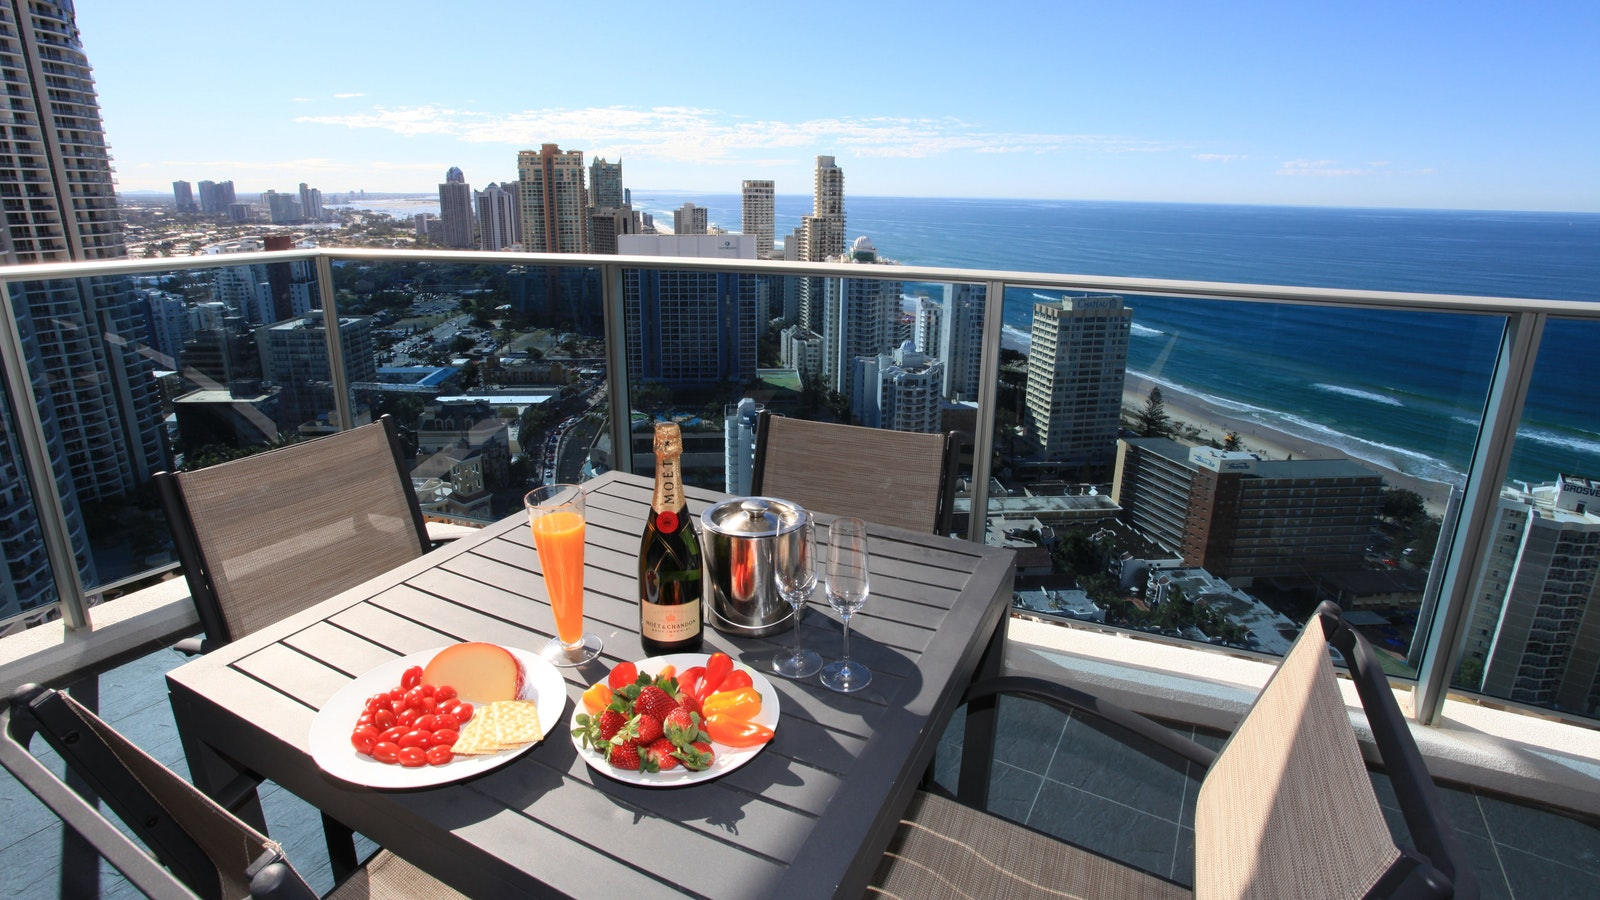 Holiday Holiday - H Residences above Surfers Paradise ocean view from balcony of high floor